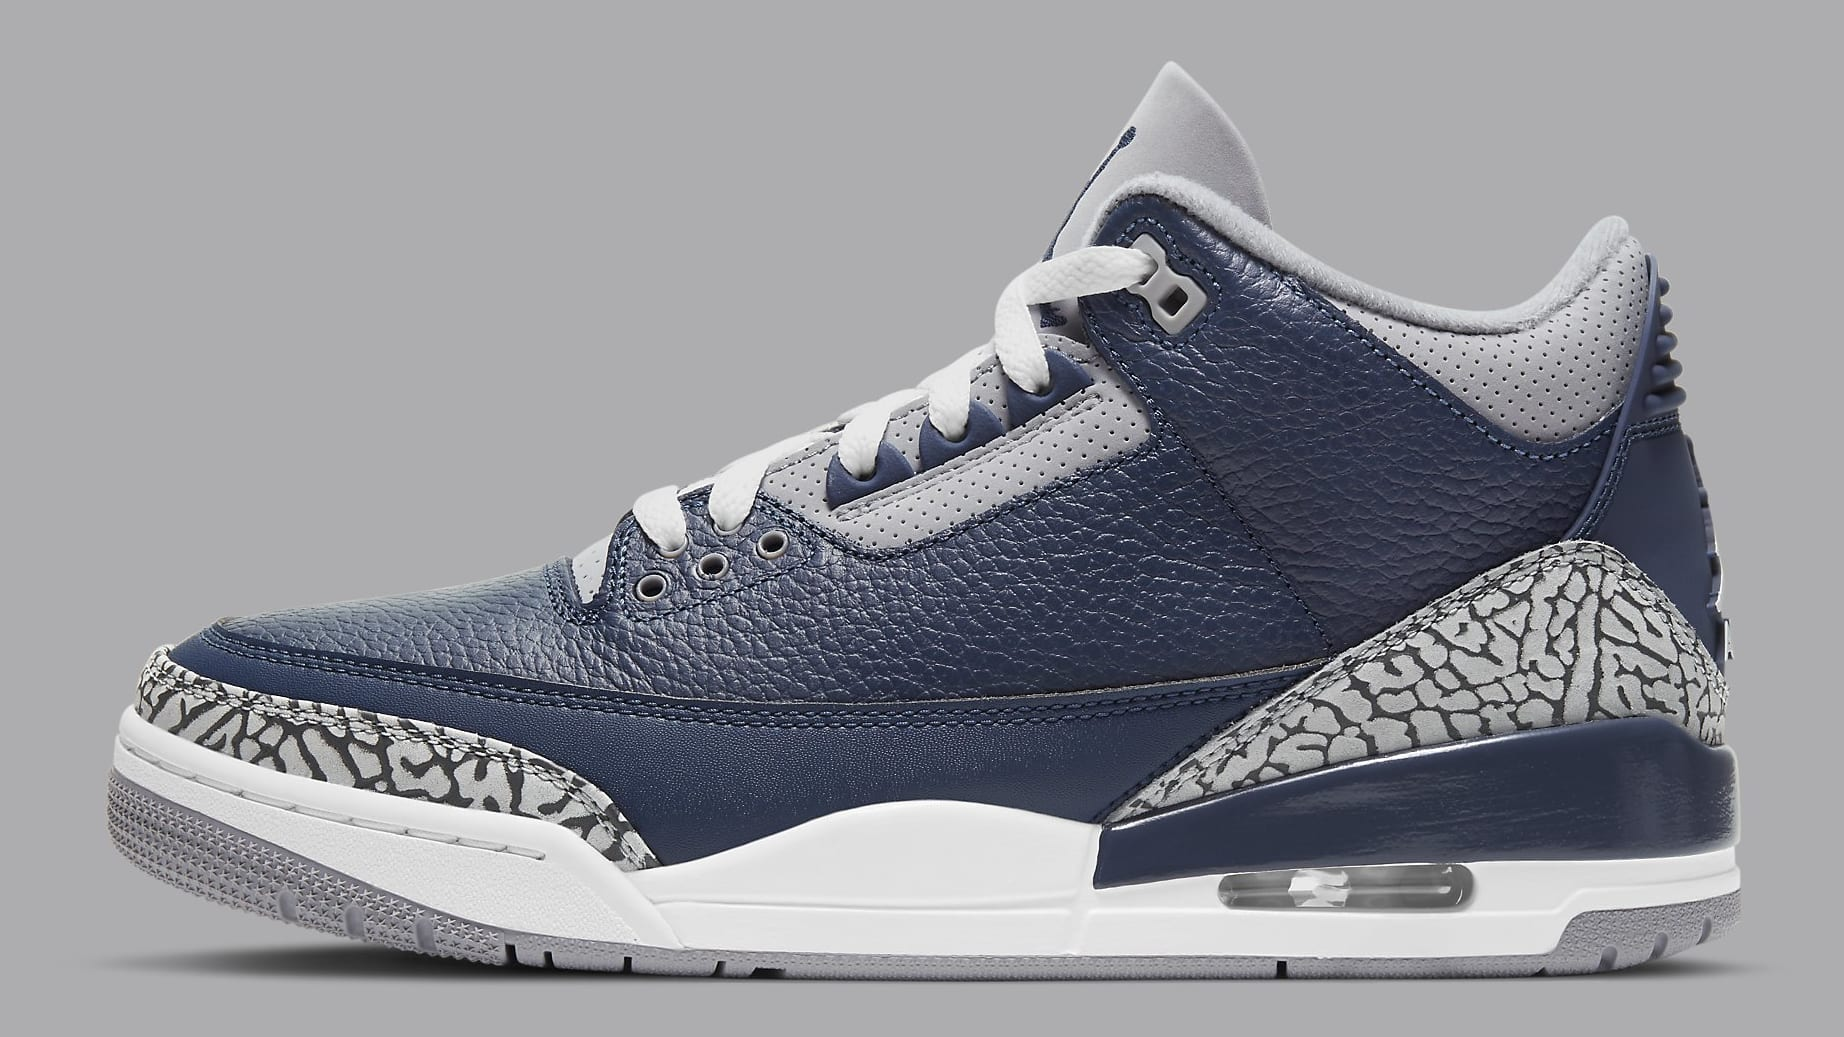 Air Jordan 3 Midnight Navy Release Date CT8532-401 Profile